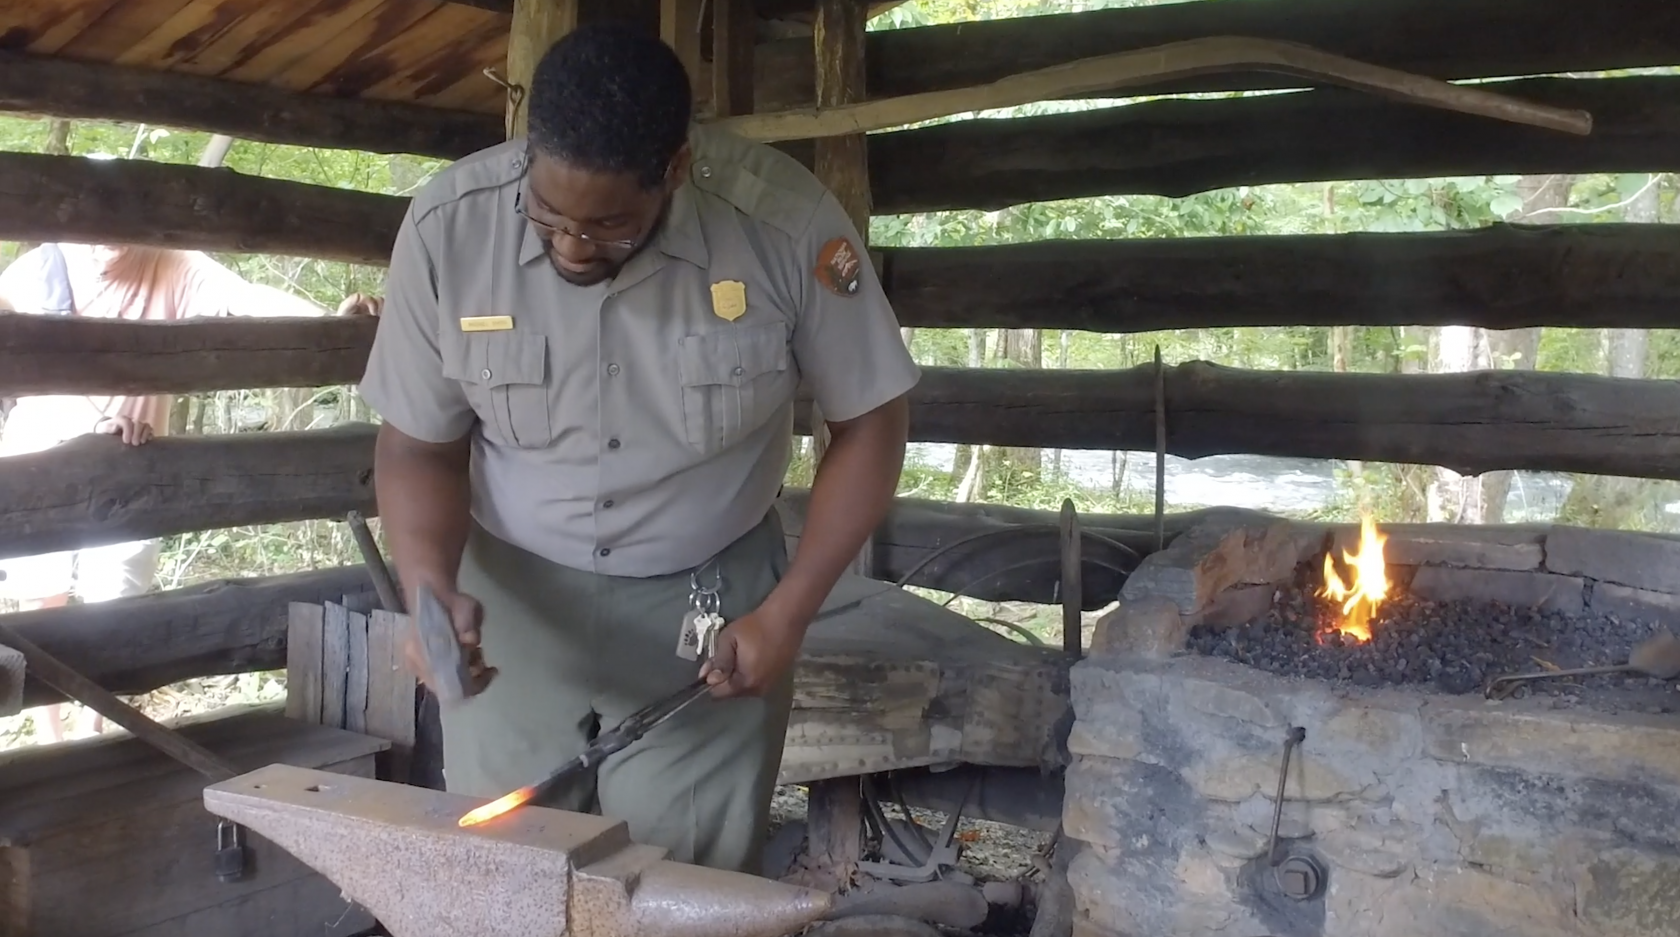 Michael Smith does a blacksmith shop demonstration, showing how metal is forged